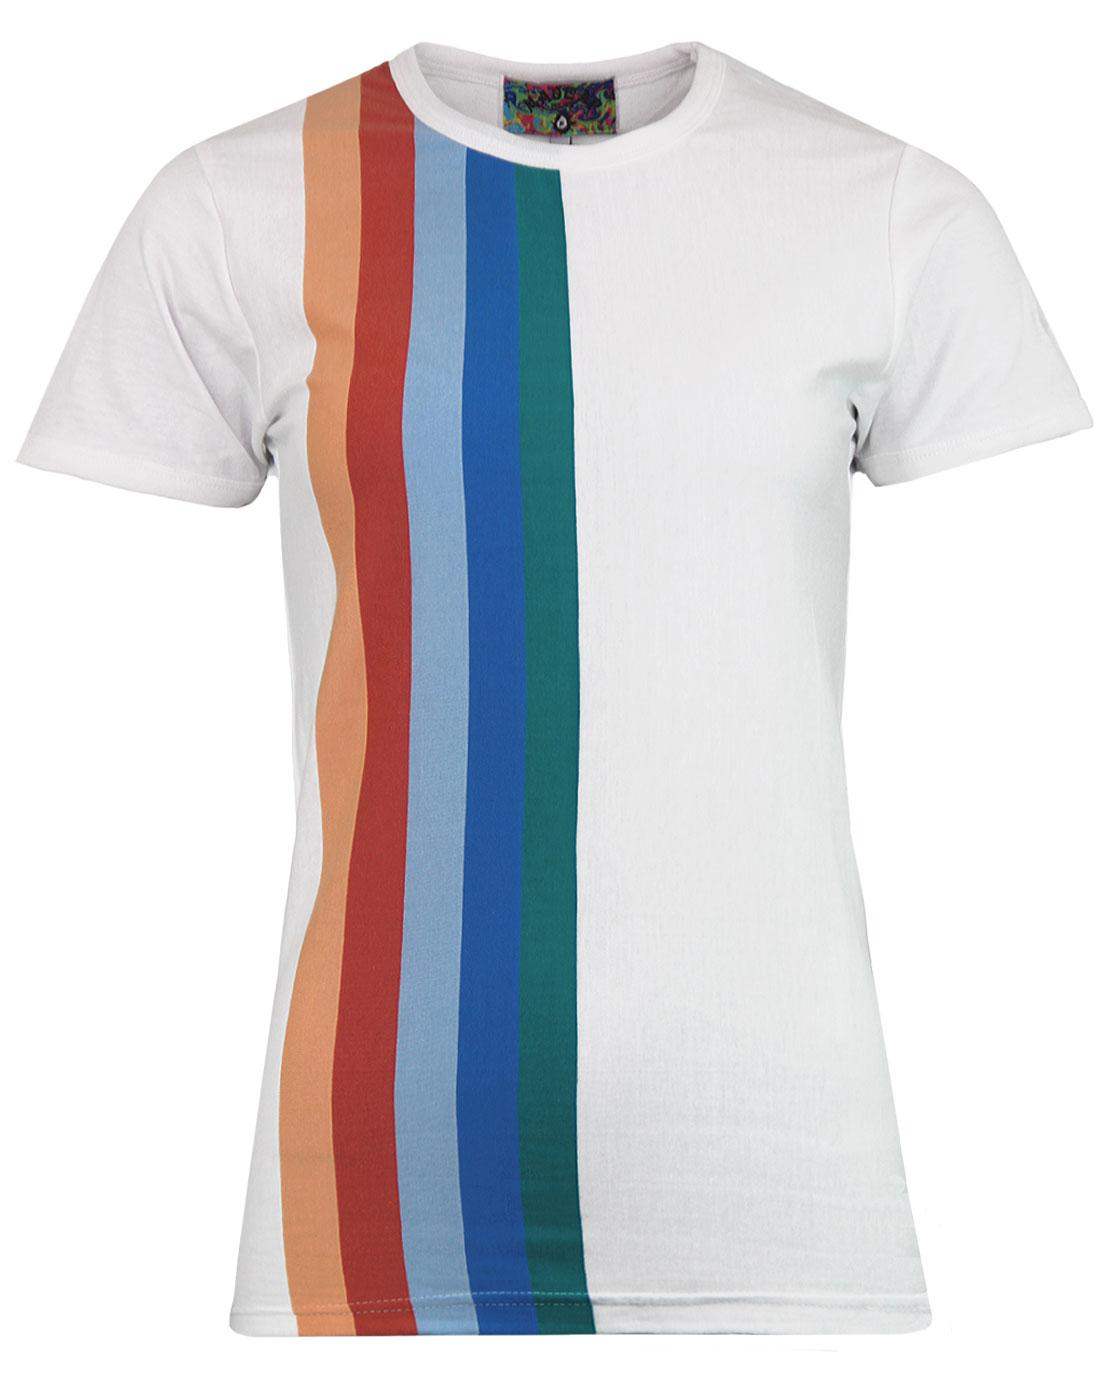 Over The Rainbow Madcap England Retro 70s T-shirt